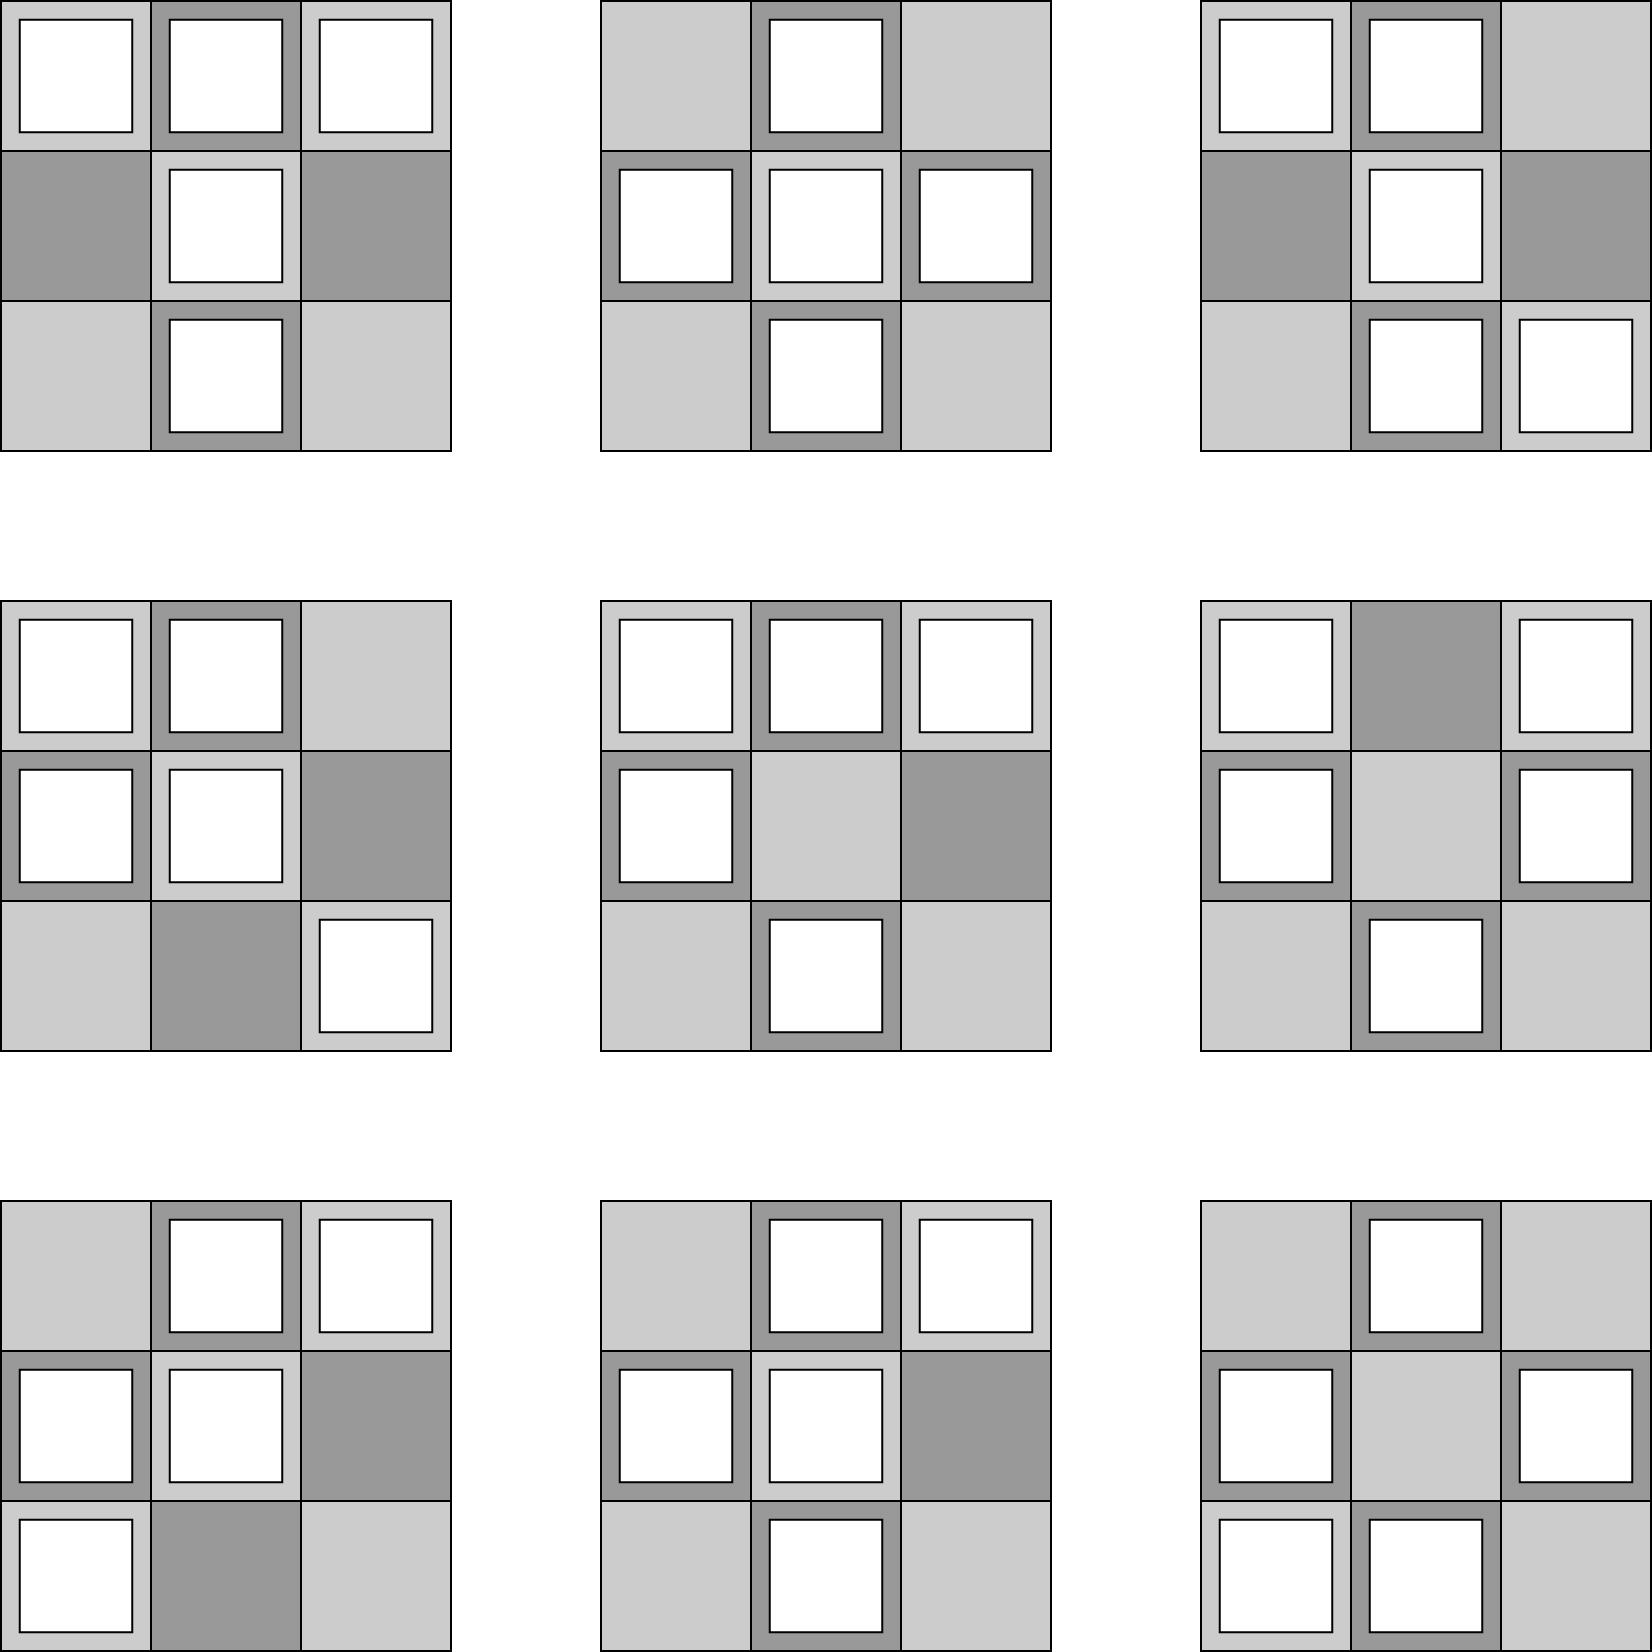 Square grid patterns patterns kid for Architecture 9 square grid